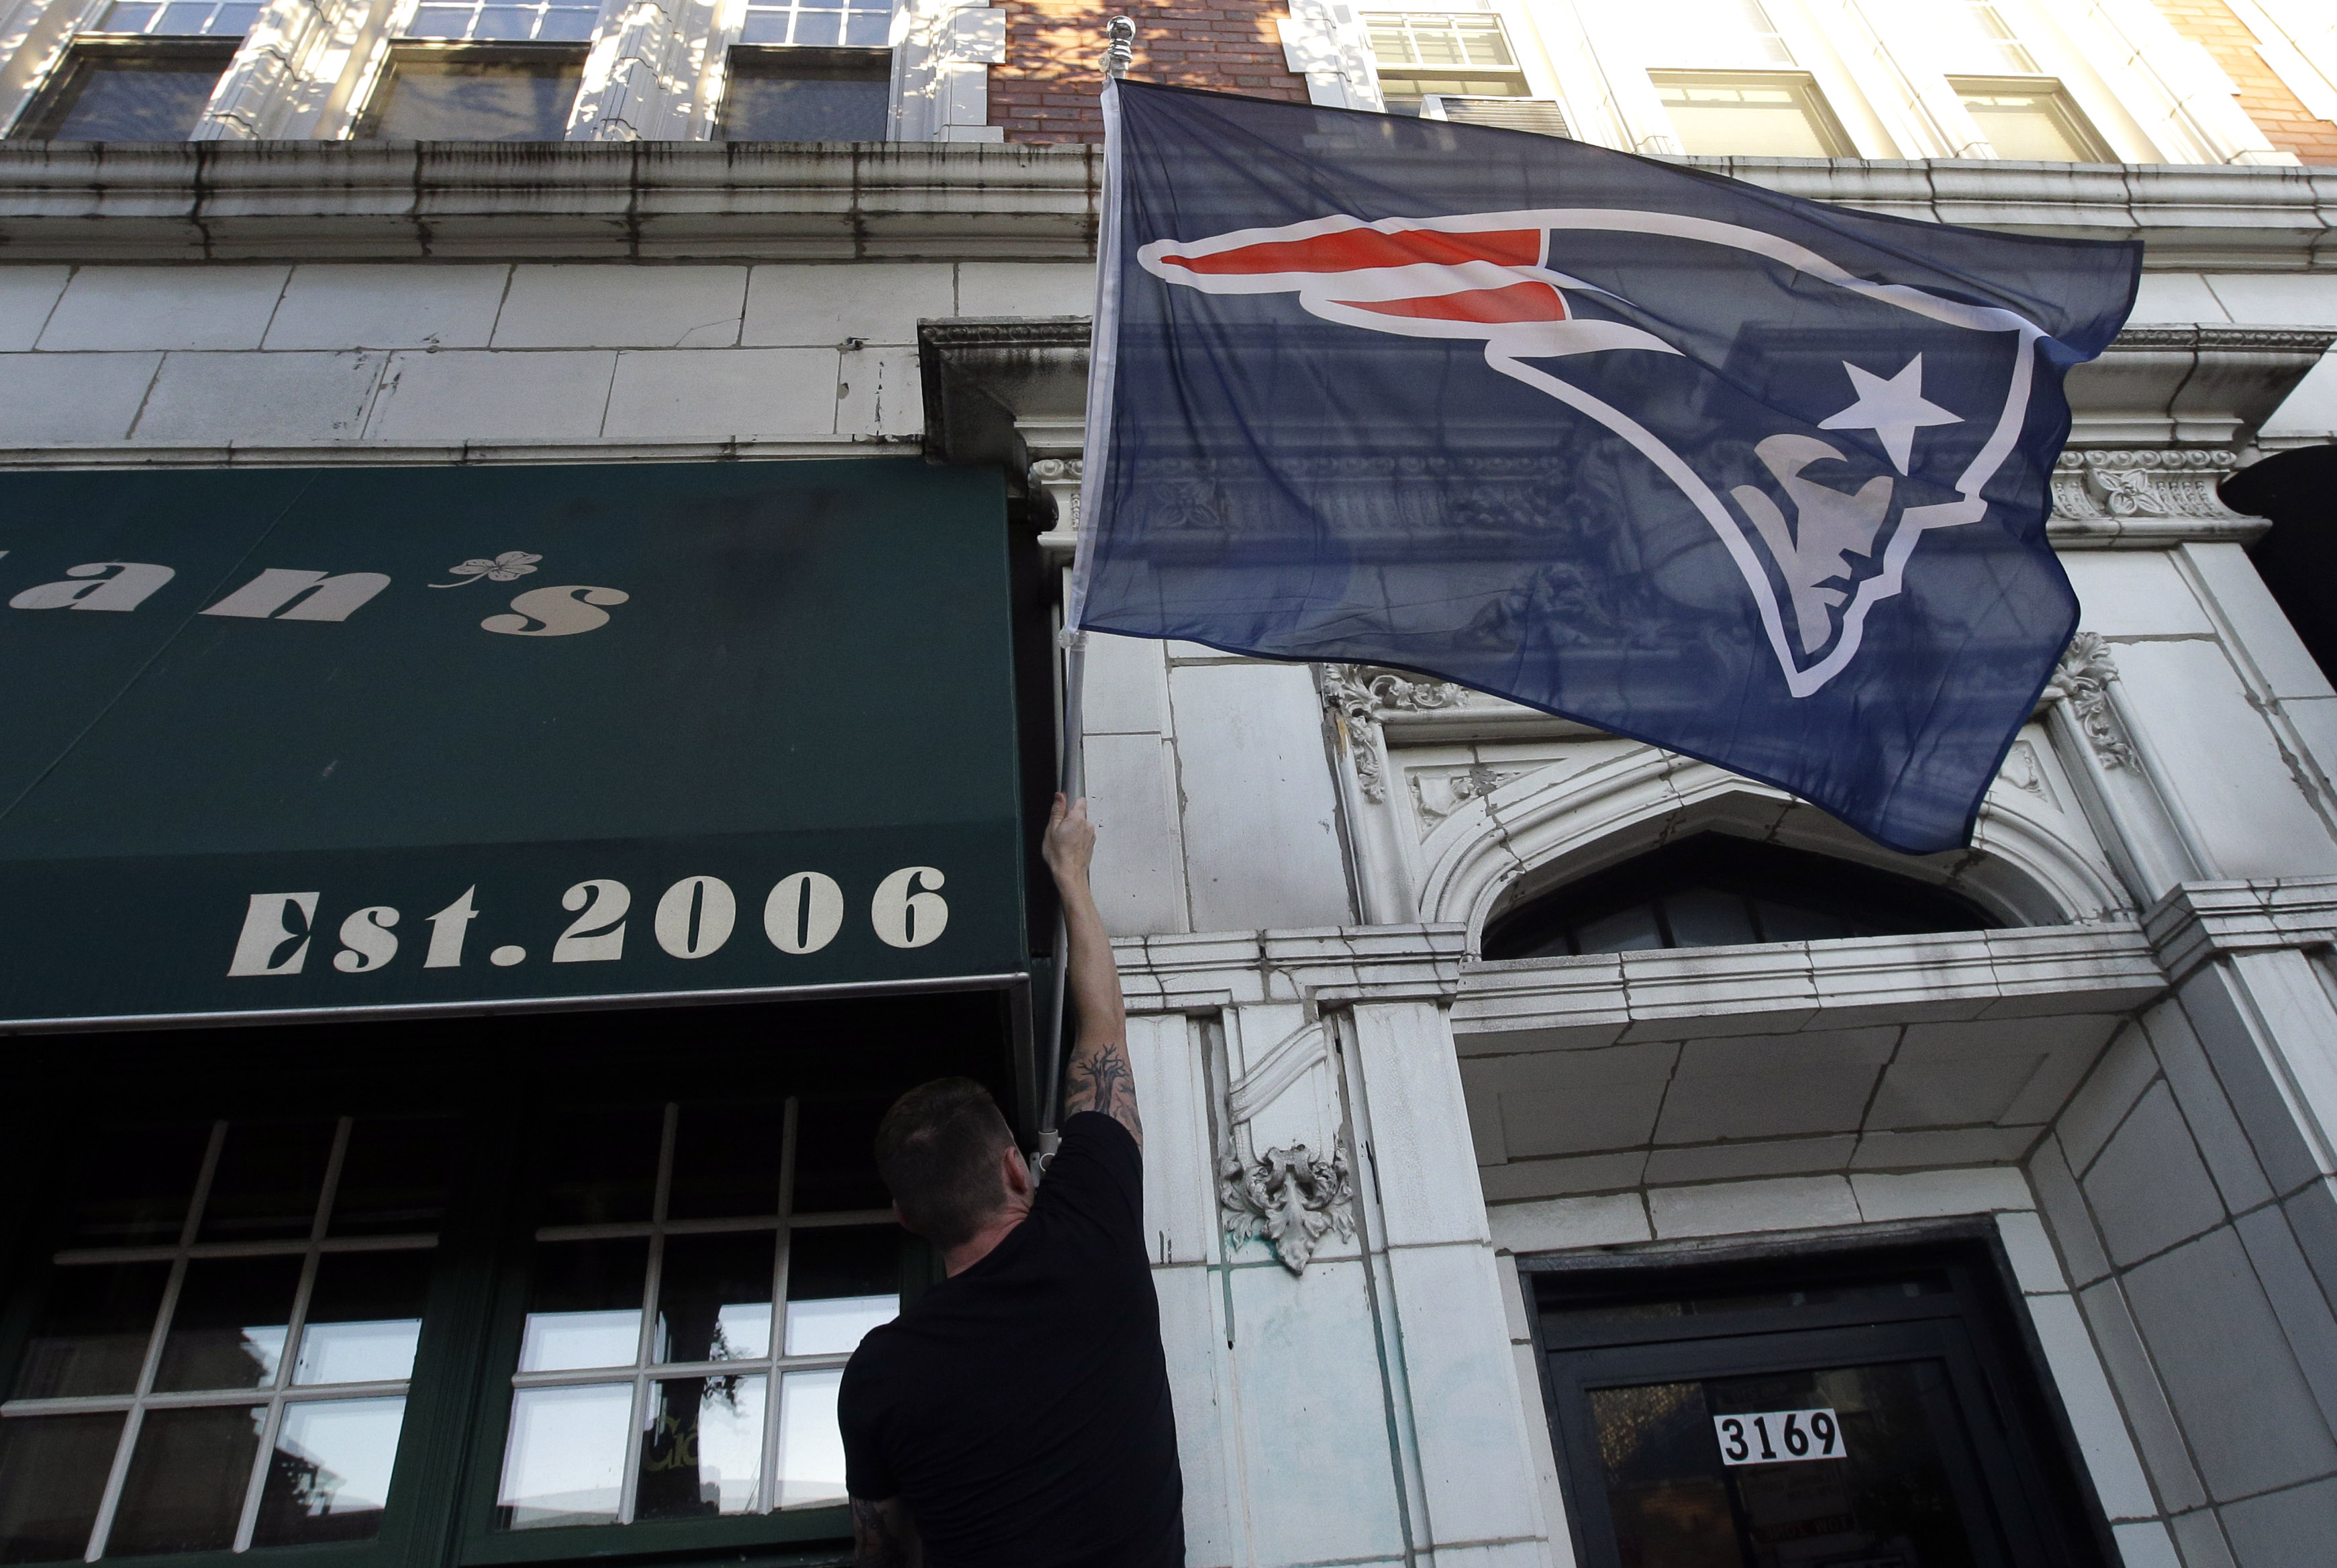 Michael Simoneau, of Chicago, hangs a New England Patriots' flag at Brendan's Pub before an NFL football game between the Pittsburgh Steelers and the Patriots on Thursday, Sept. 10, 2015, in Chicago. Friends who are Patriots fans are coming to town, and y